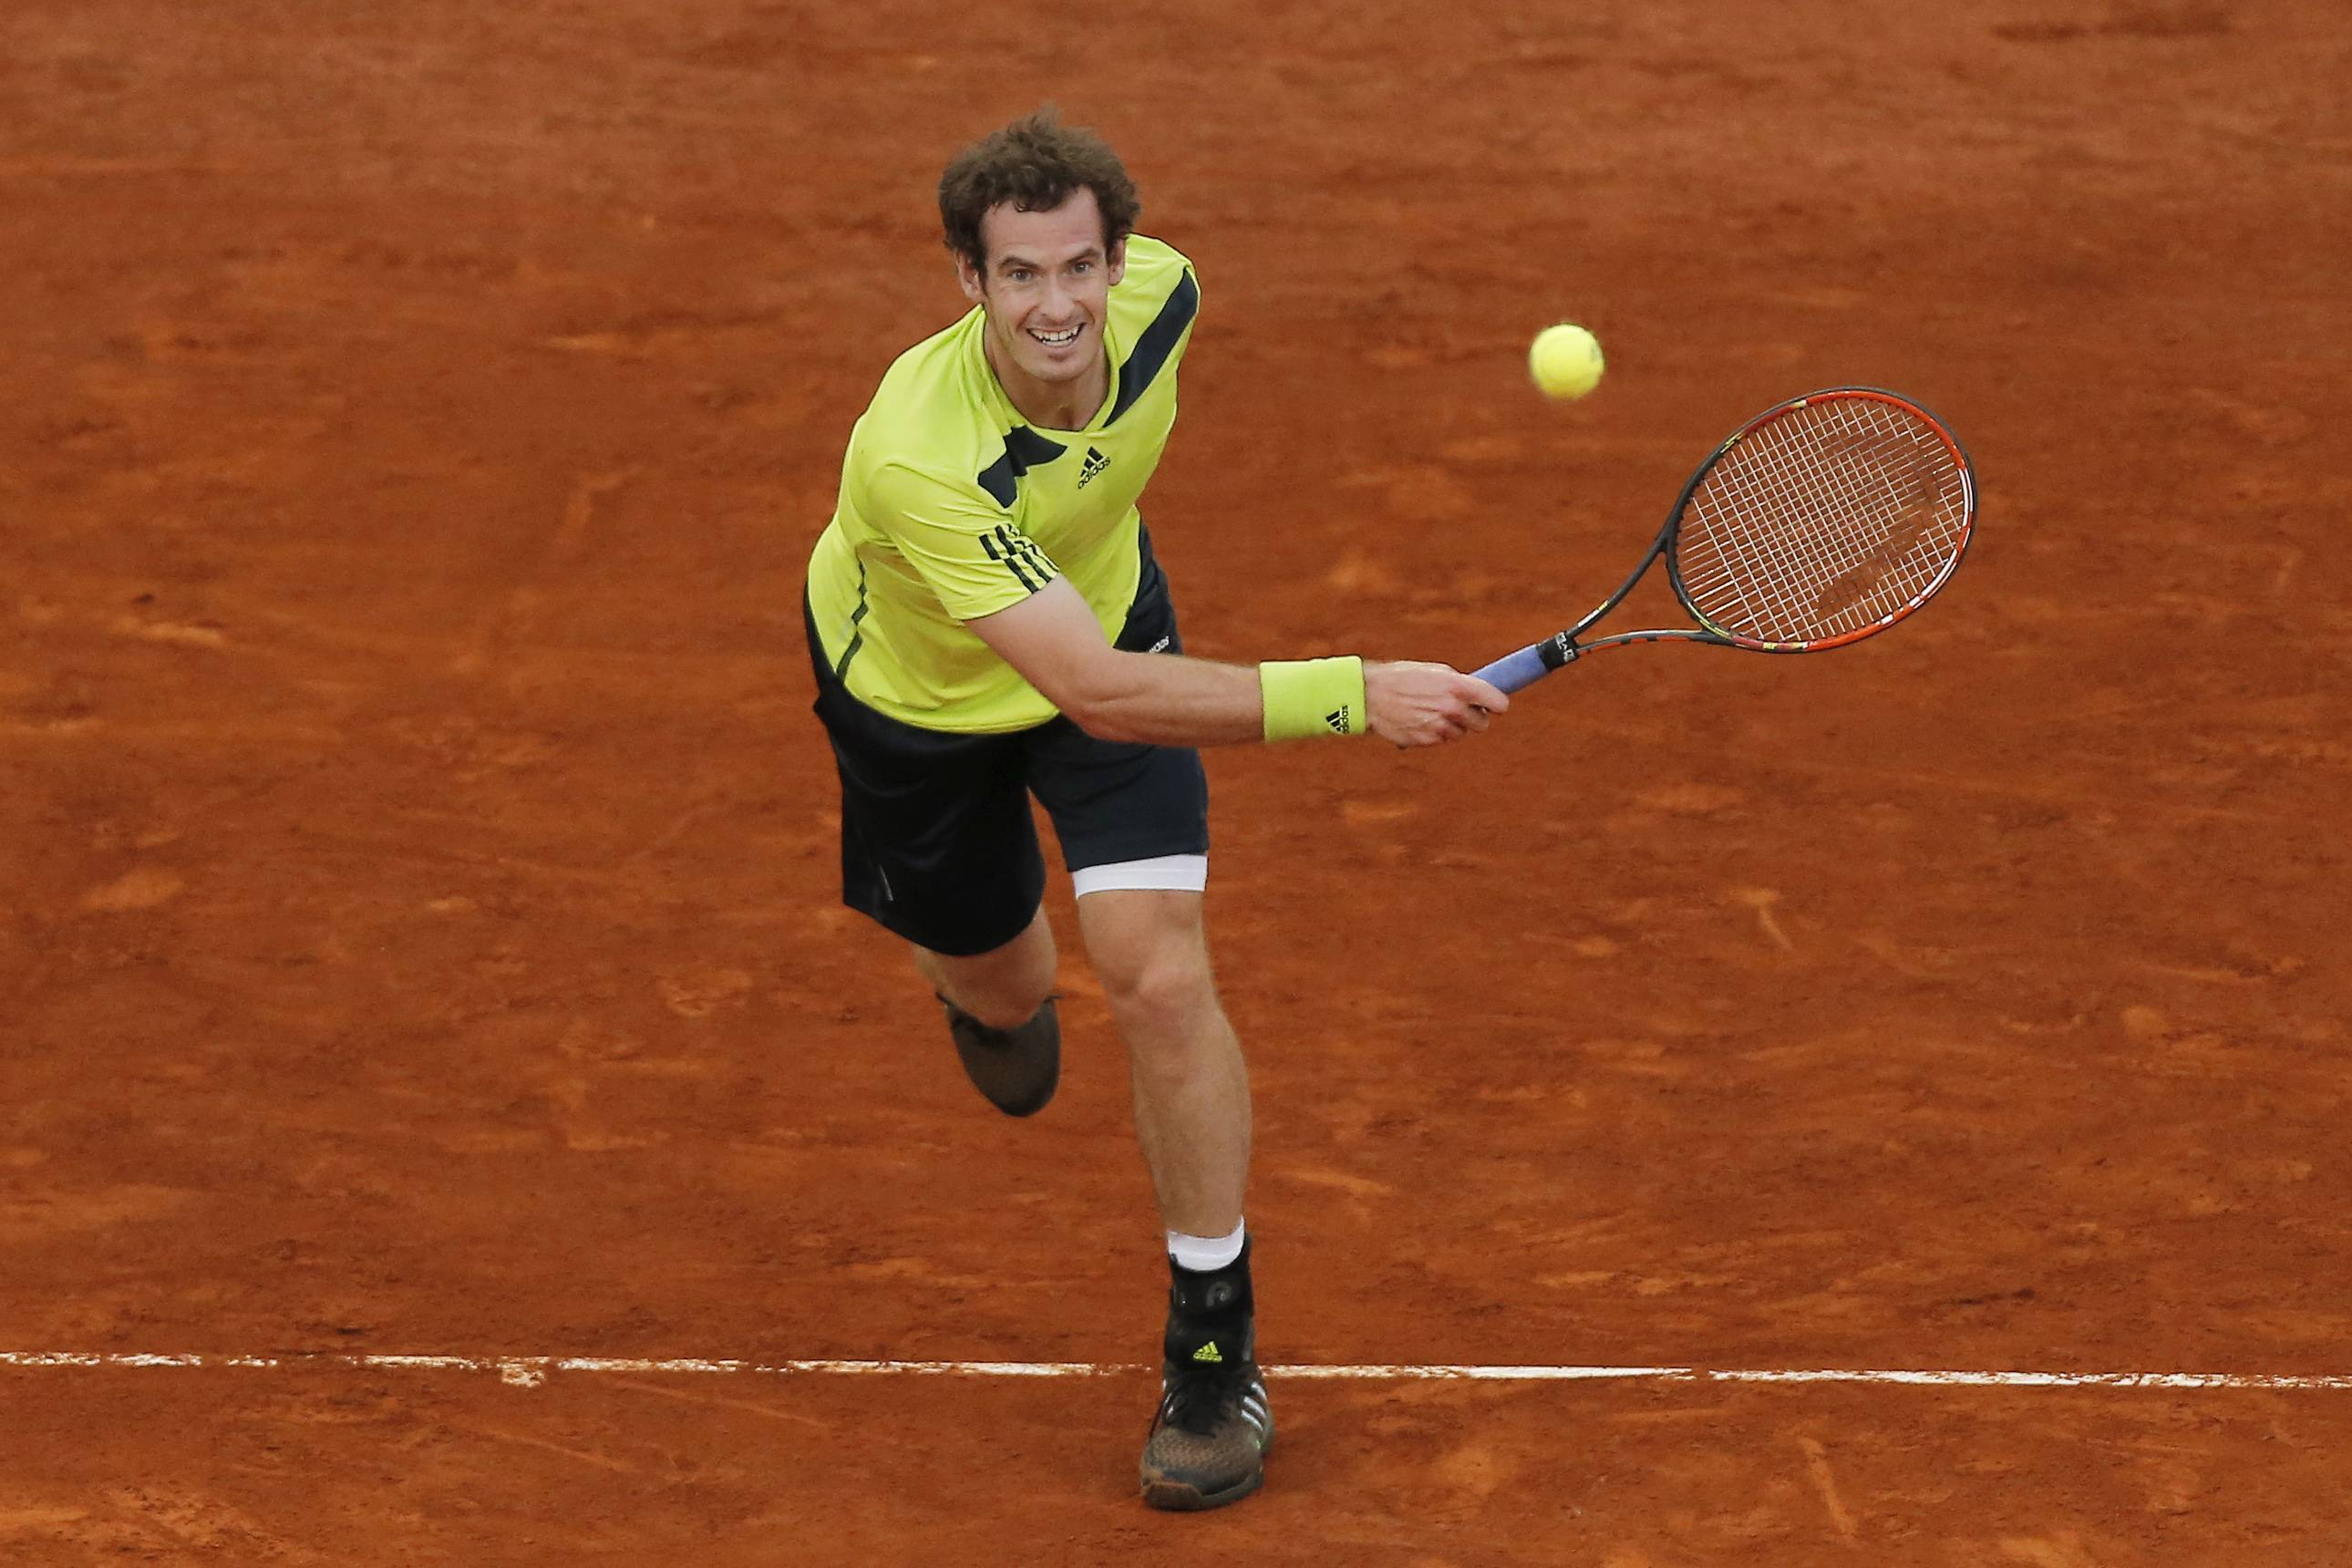 Britain's Andy Murray returns the ball during a Madrid Open tennis tournament match against Nicolas Almagro from Spain, in Madrid, Spain, Wednesday, May 7, 2014.